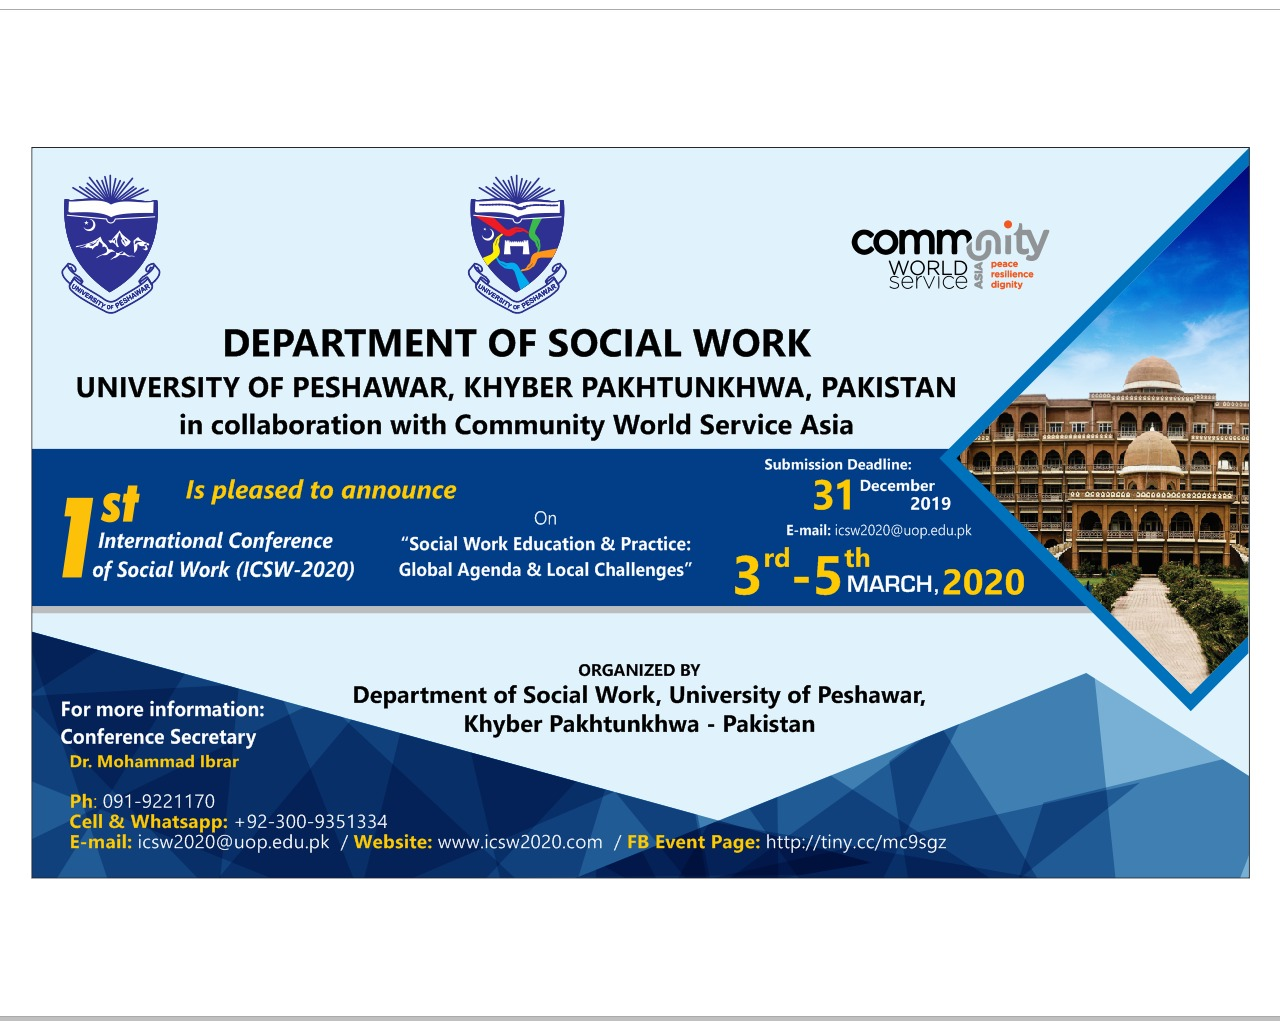 1st International Conference of Social Work (ICSW-2020) On